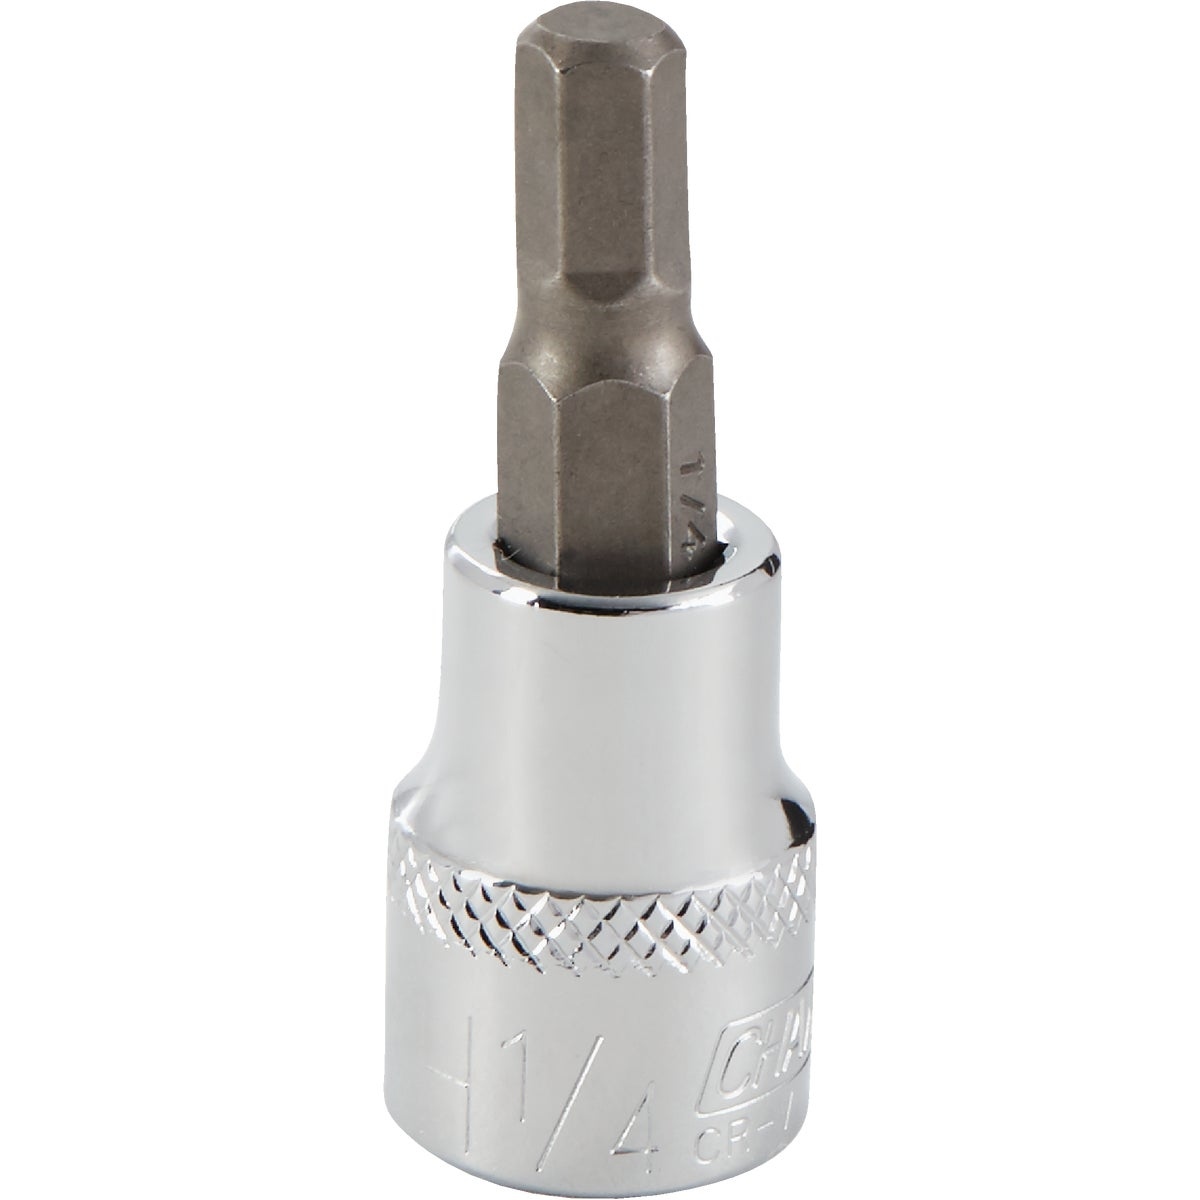 "1/4"" HEX BIT SOCKET - 371181 by Bwt Inc"